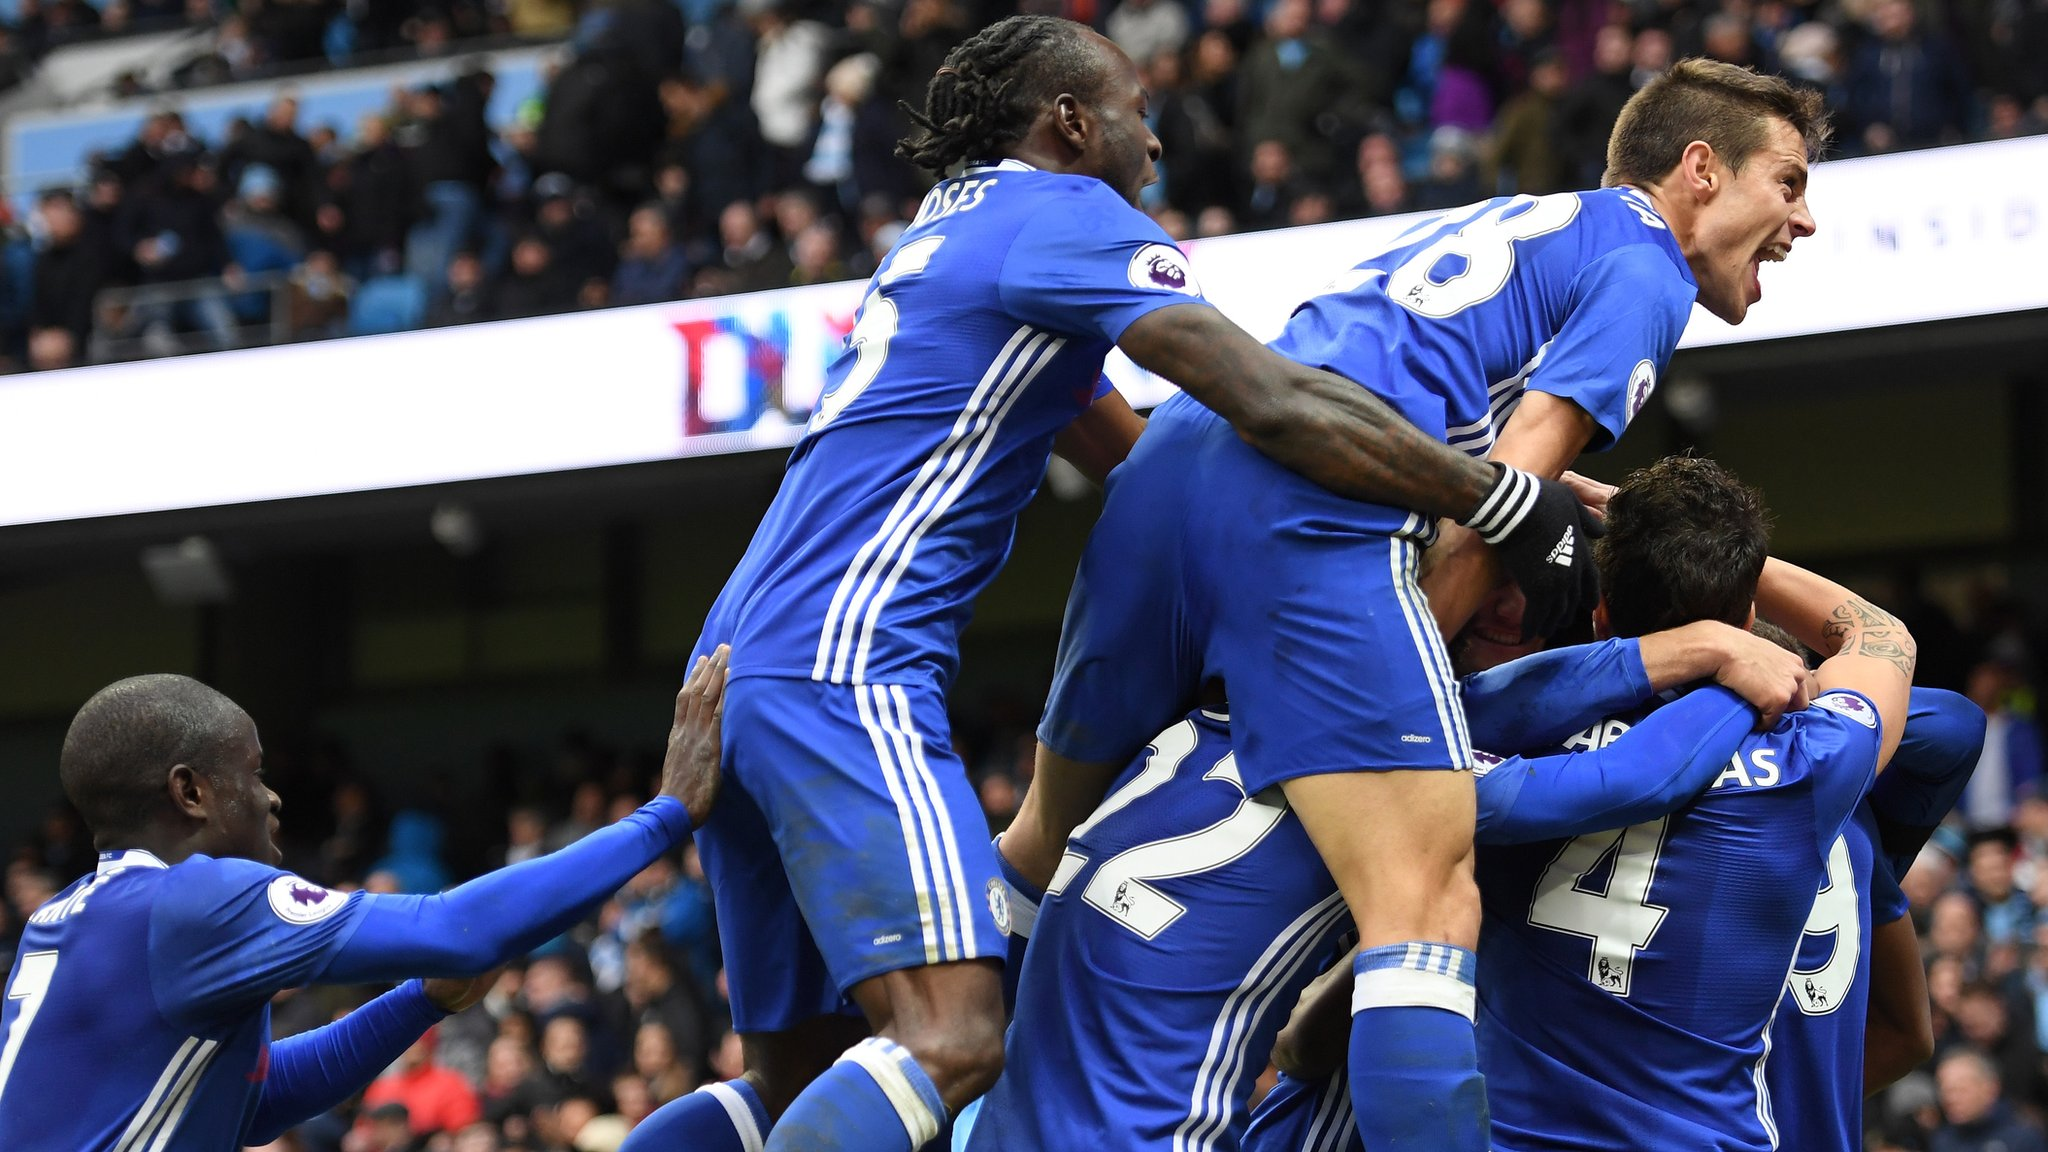 Two sent off as Chelsea win fiery clash at Man City